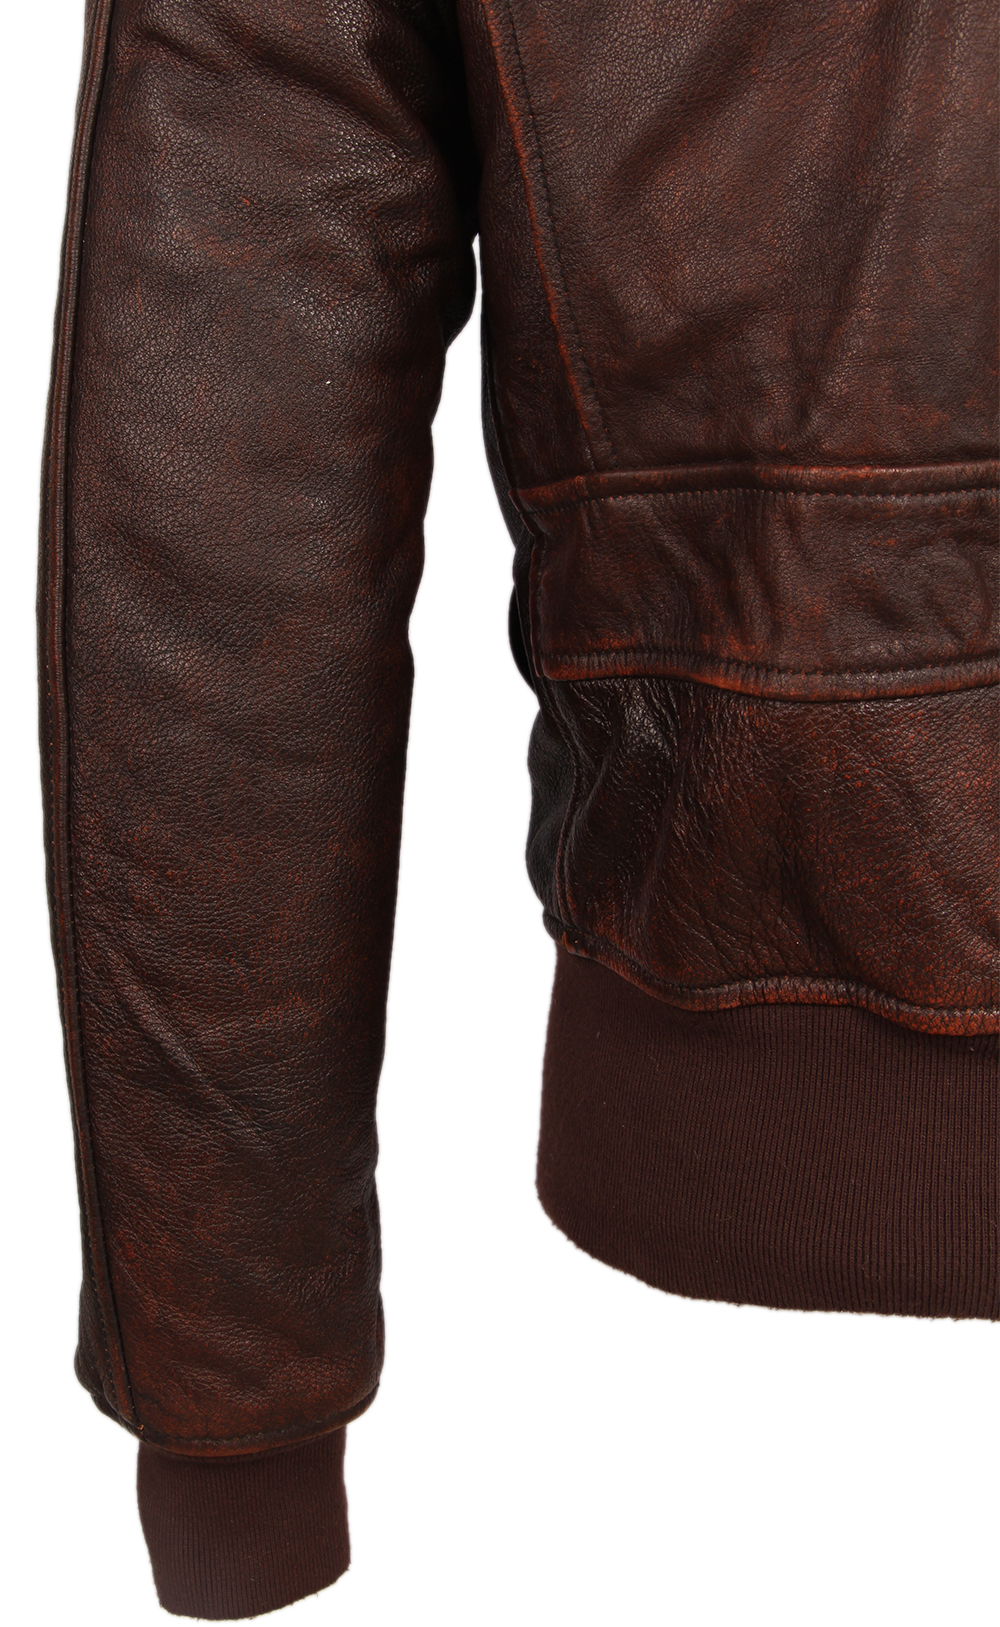 He7d0614426a44b388c285a6e79706a4fU Vintage Distressed Men Leather Jacket Quilted Fur Collar 100% Calfskin Flight Jacket Men's Leather Jacket Man Winter Coat M253